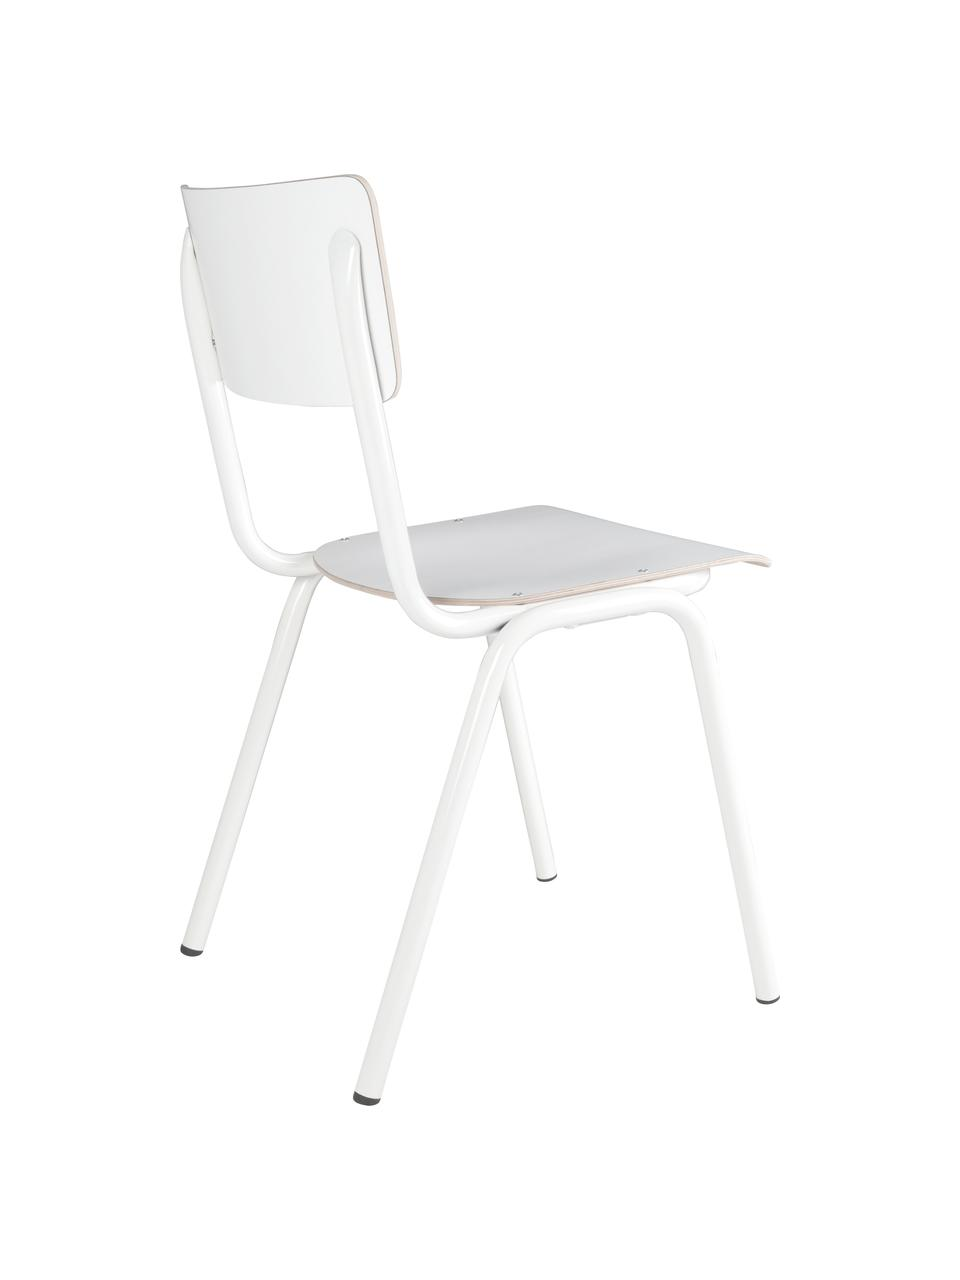 Chaises Back to School, 4pièces, Blanc